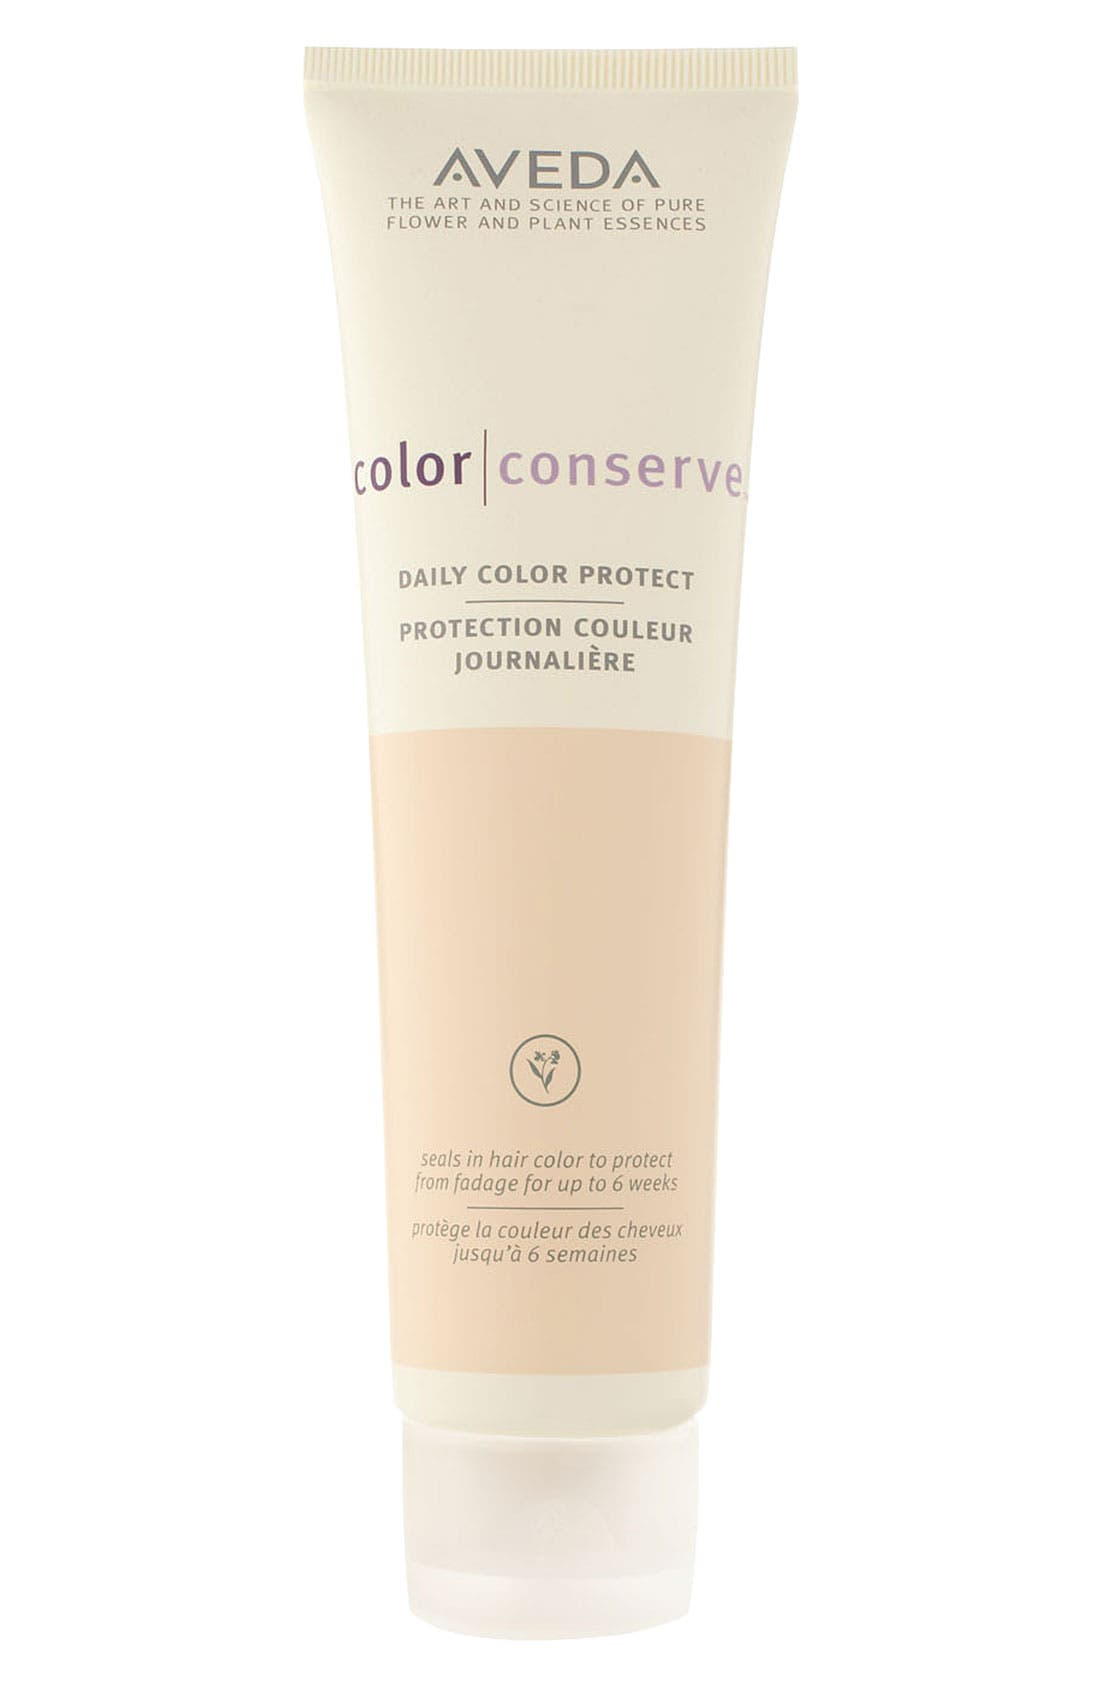 Aveda 'color conserve™' Daily Color Protect